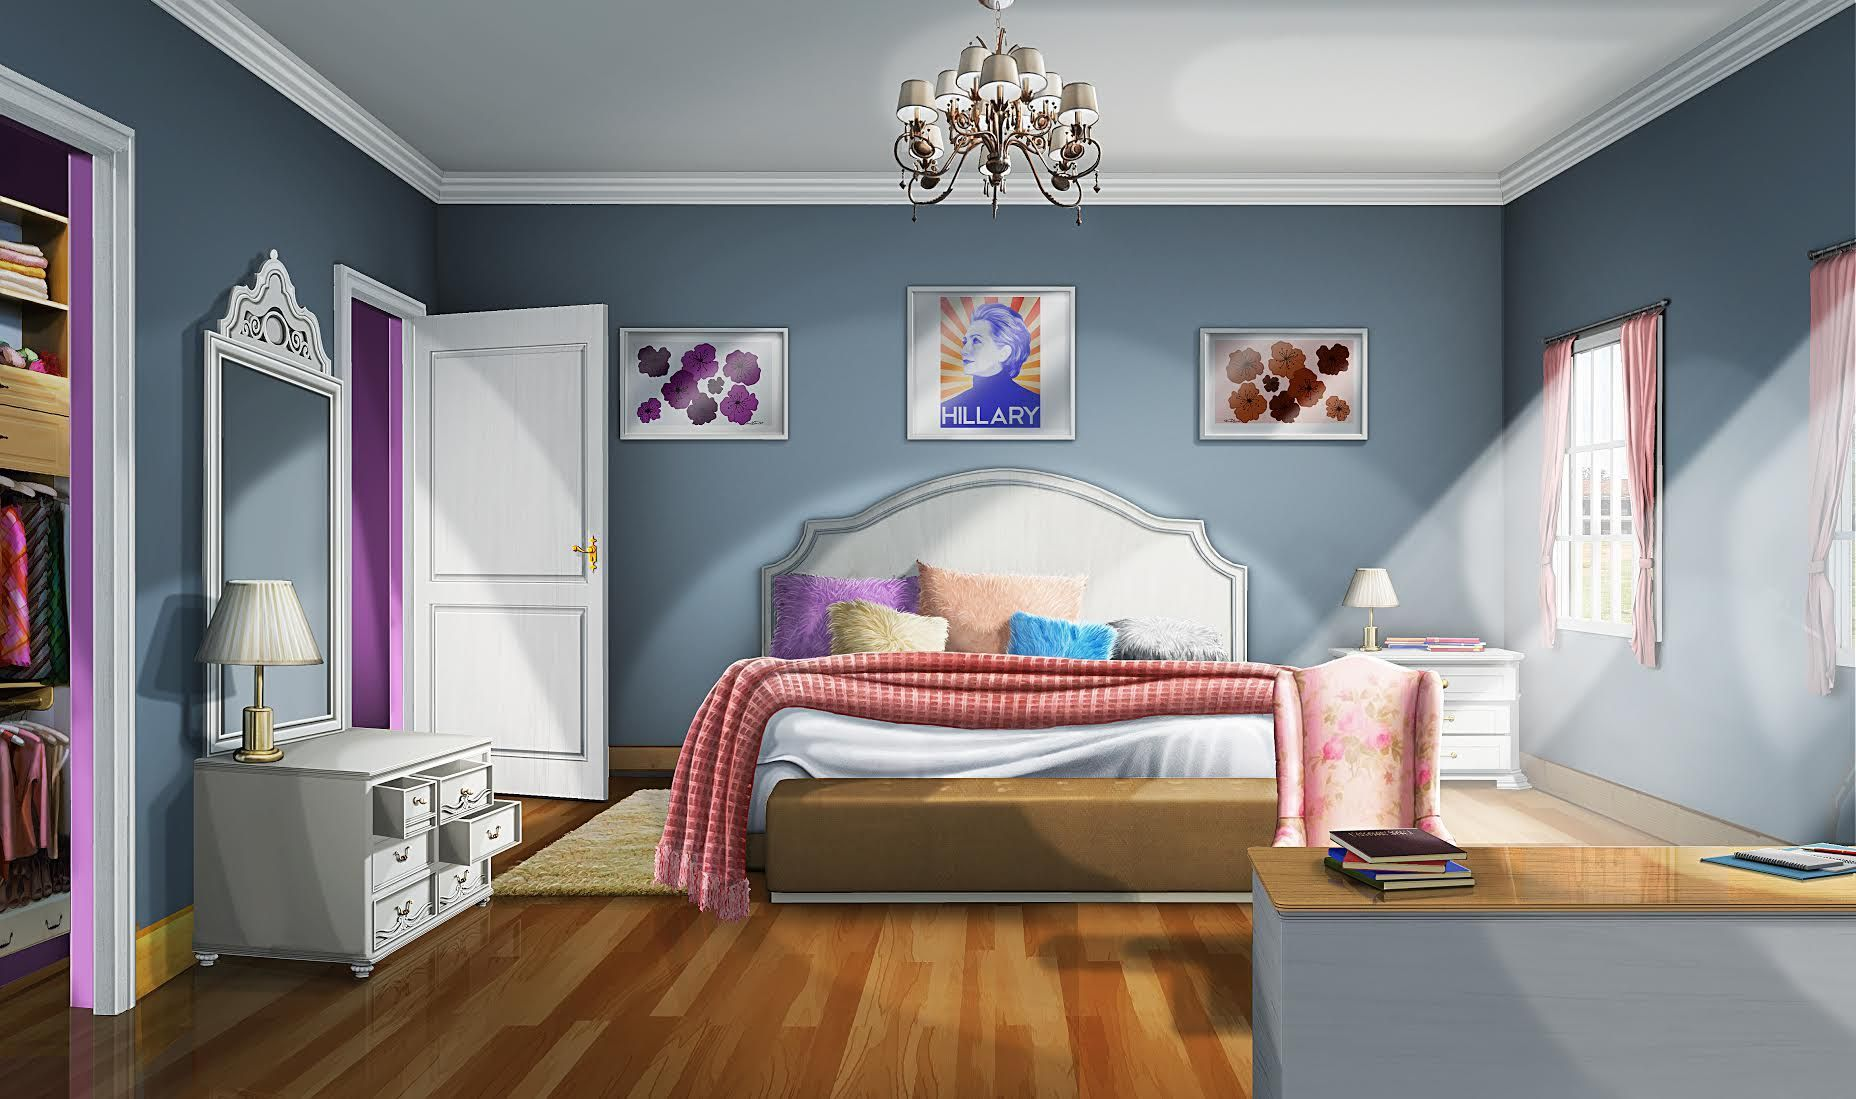 Room Background: INT. BRISTOLS BEDROOM - DAY